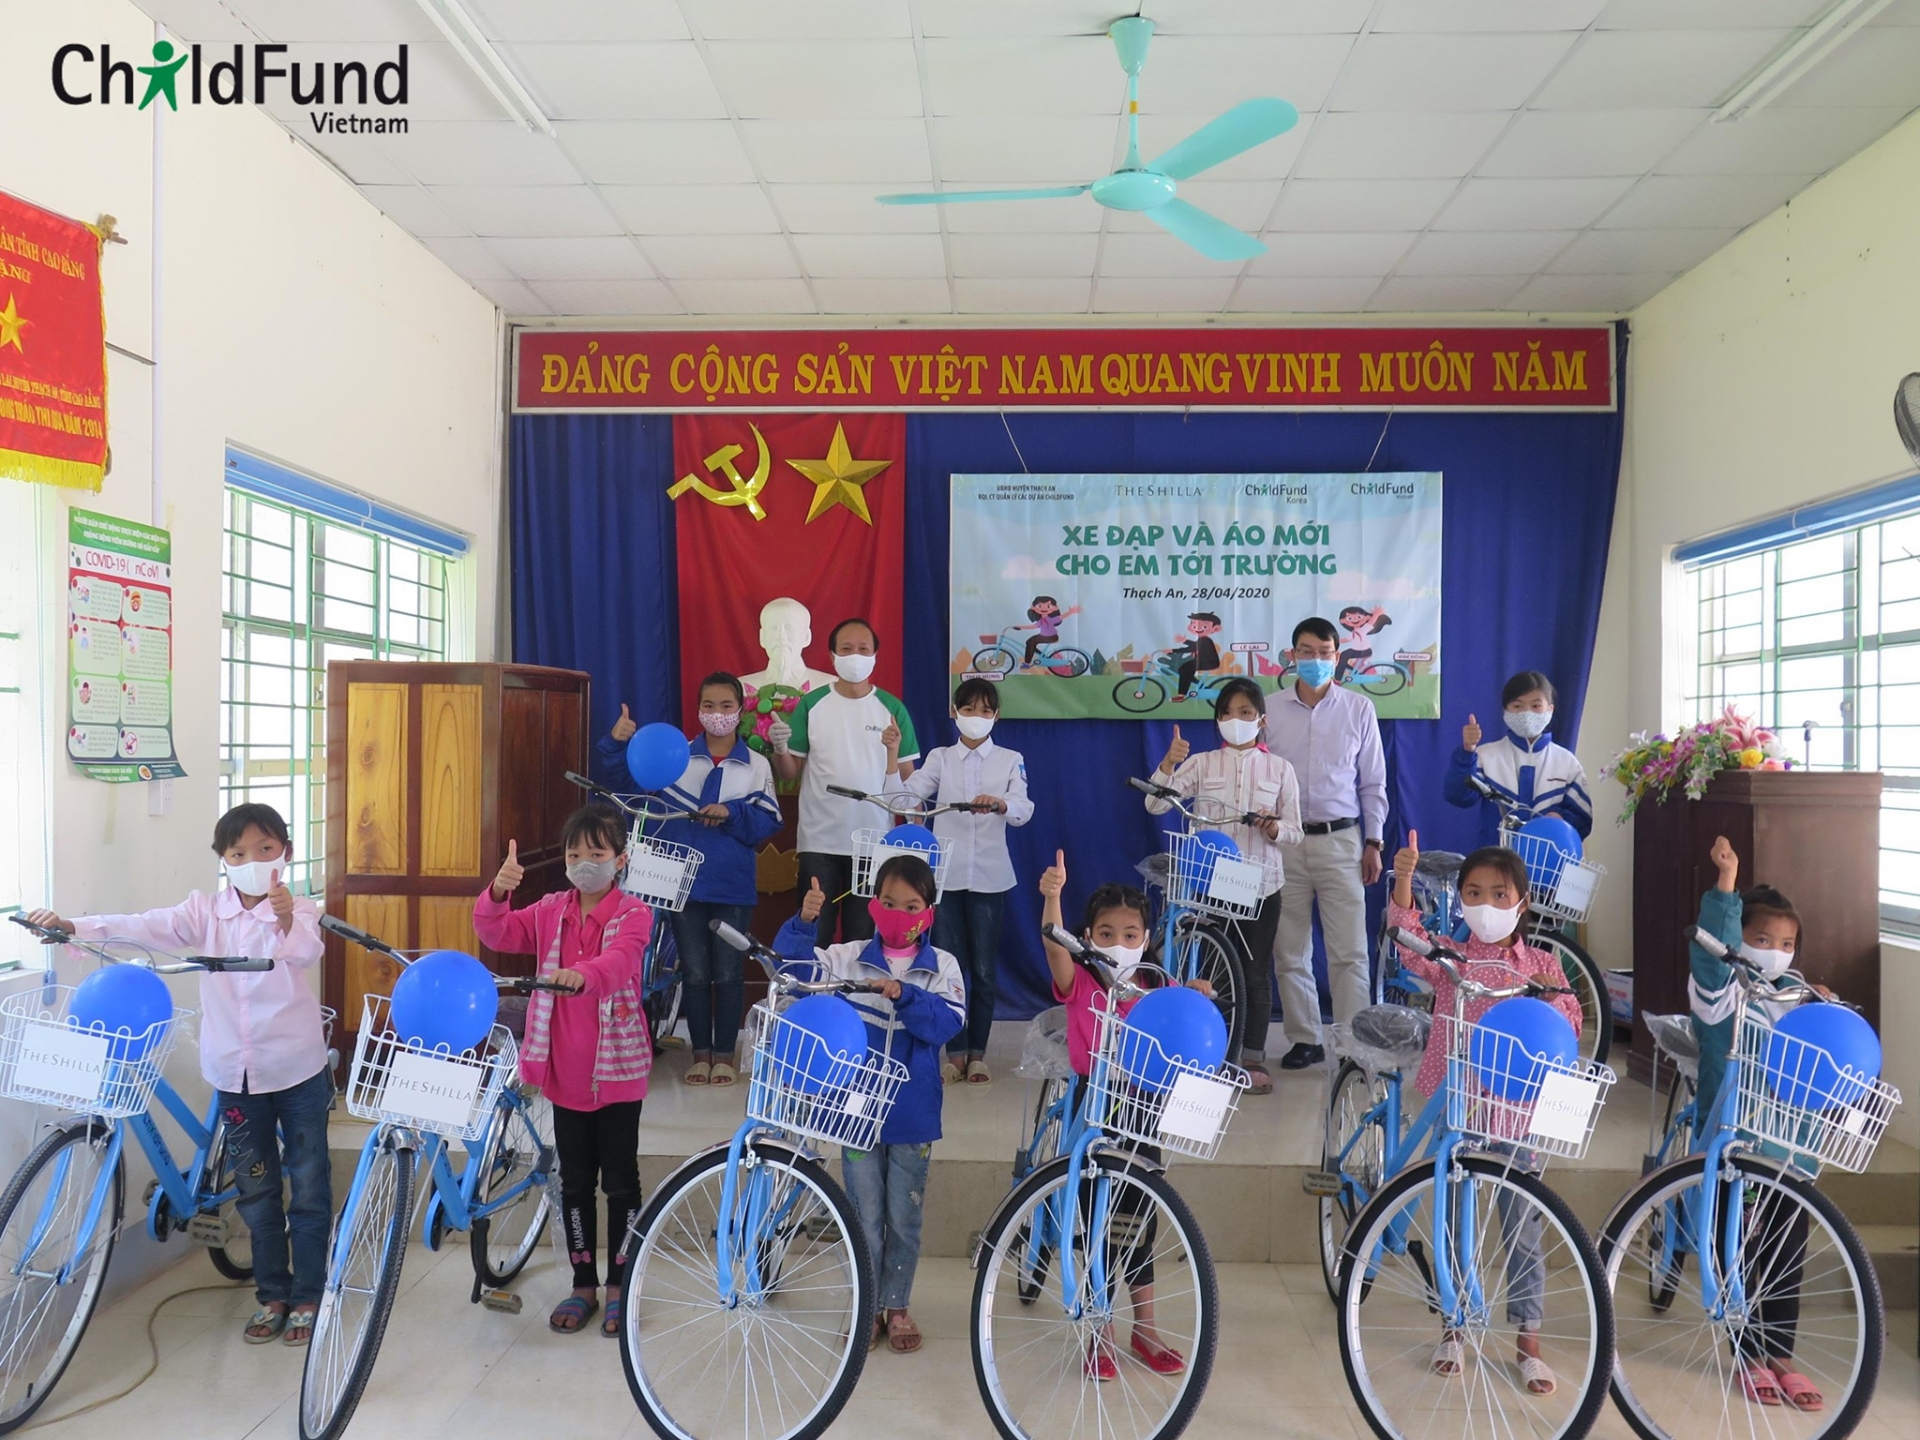 cao bang children benefit from childfund vietnam bicycles donation